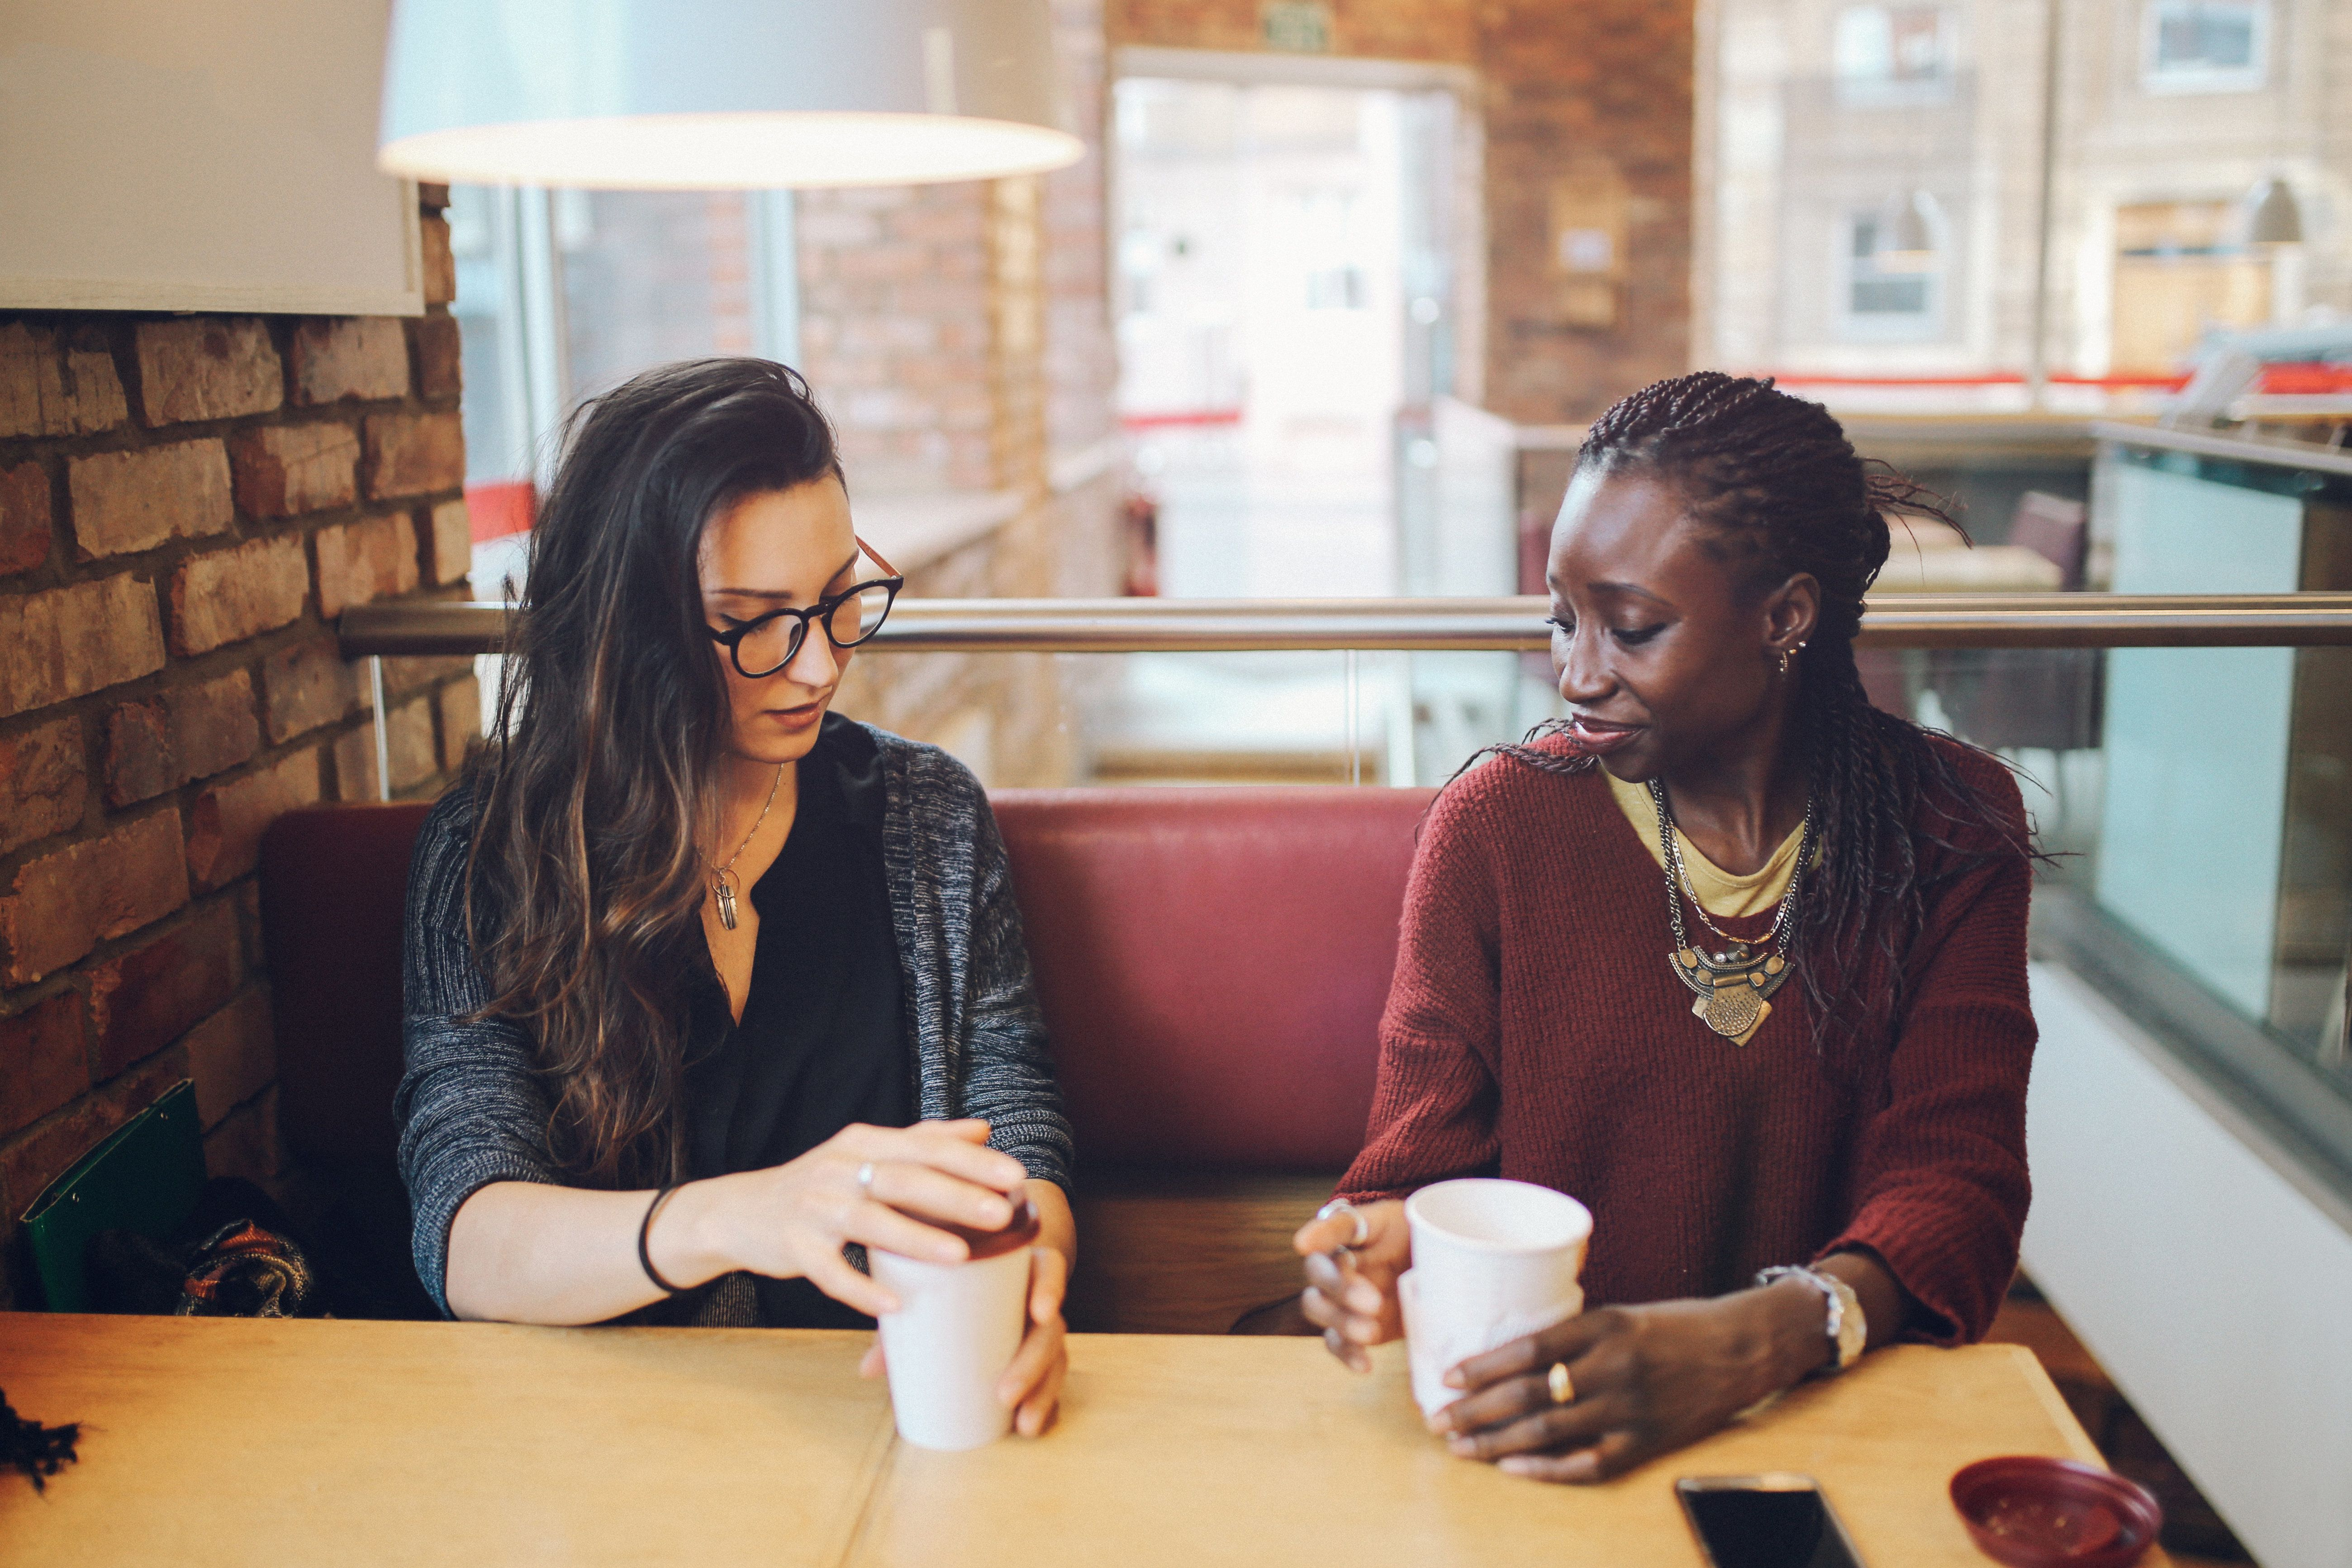 Portrait of a two young women of different ethnicities, sitting together outdoors, at the coffee break, chatting.